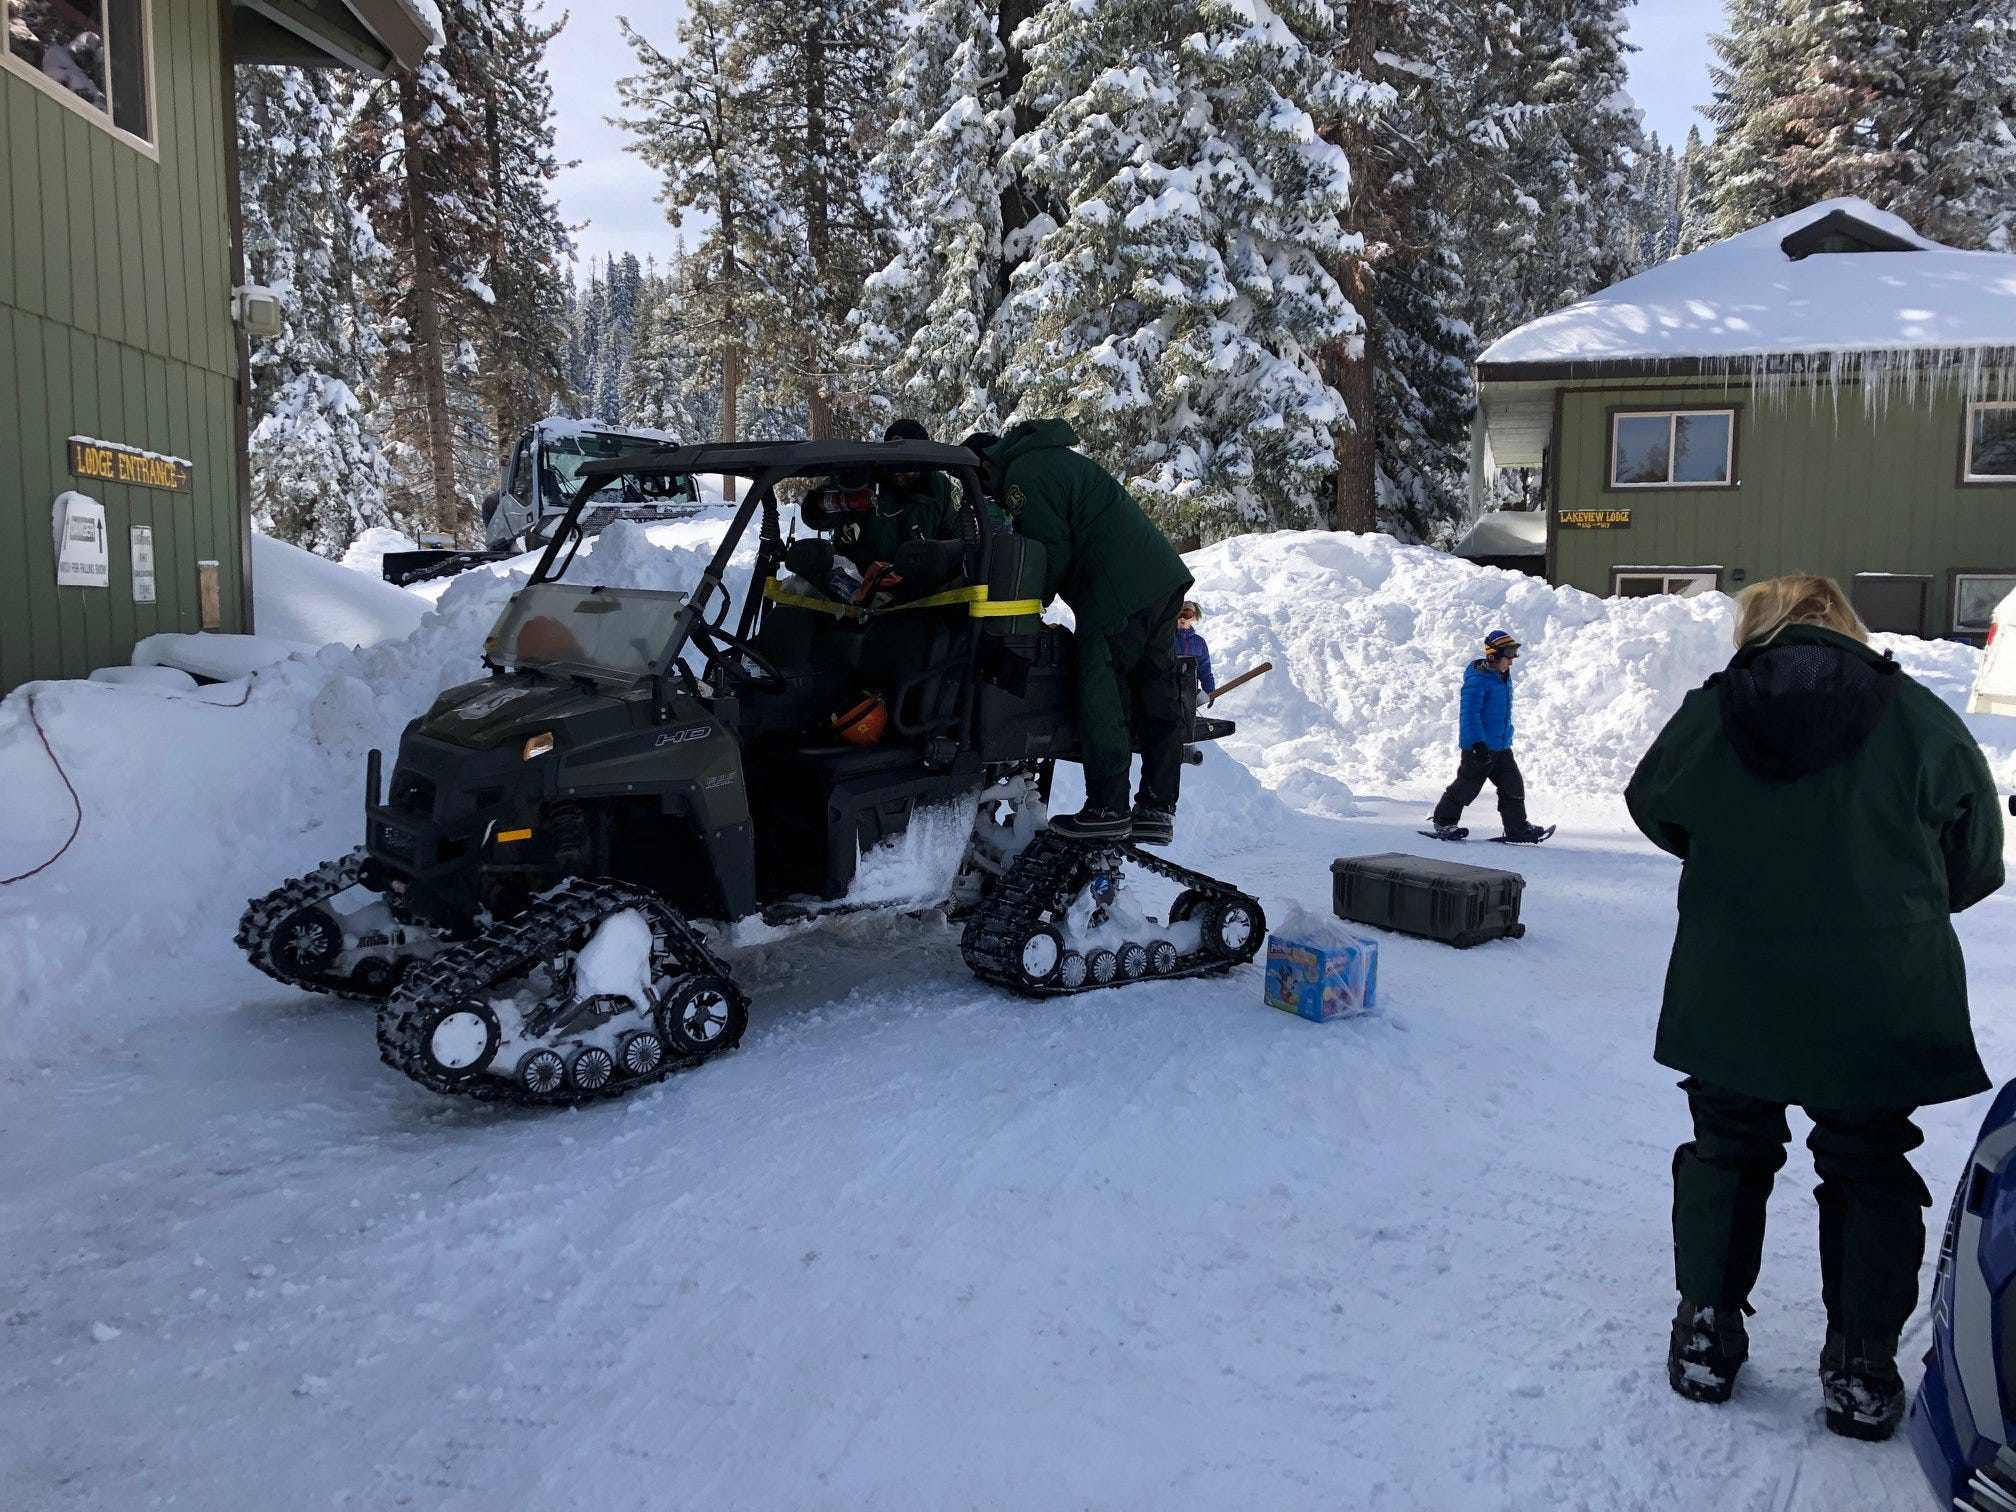 120 snowbound visitors at California mountain resort freed by rangers